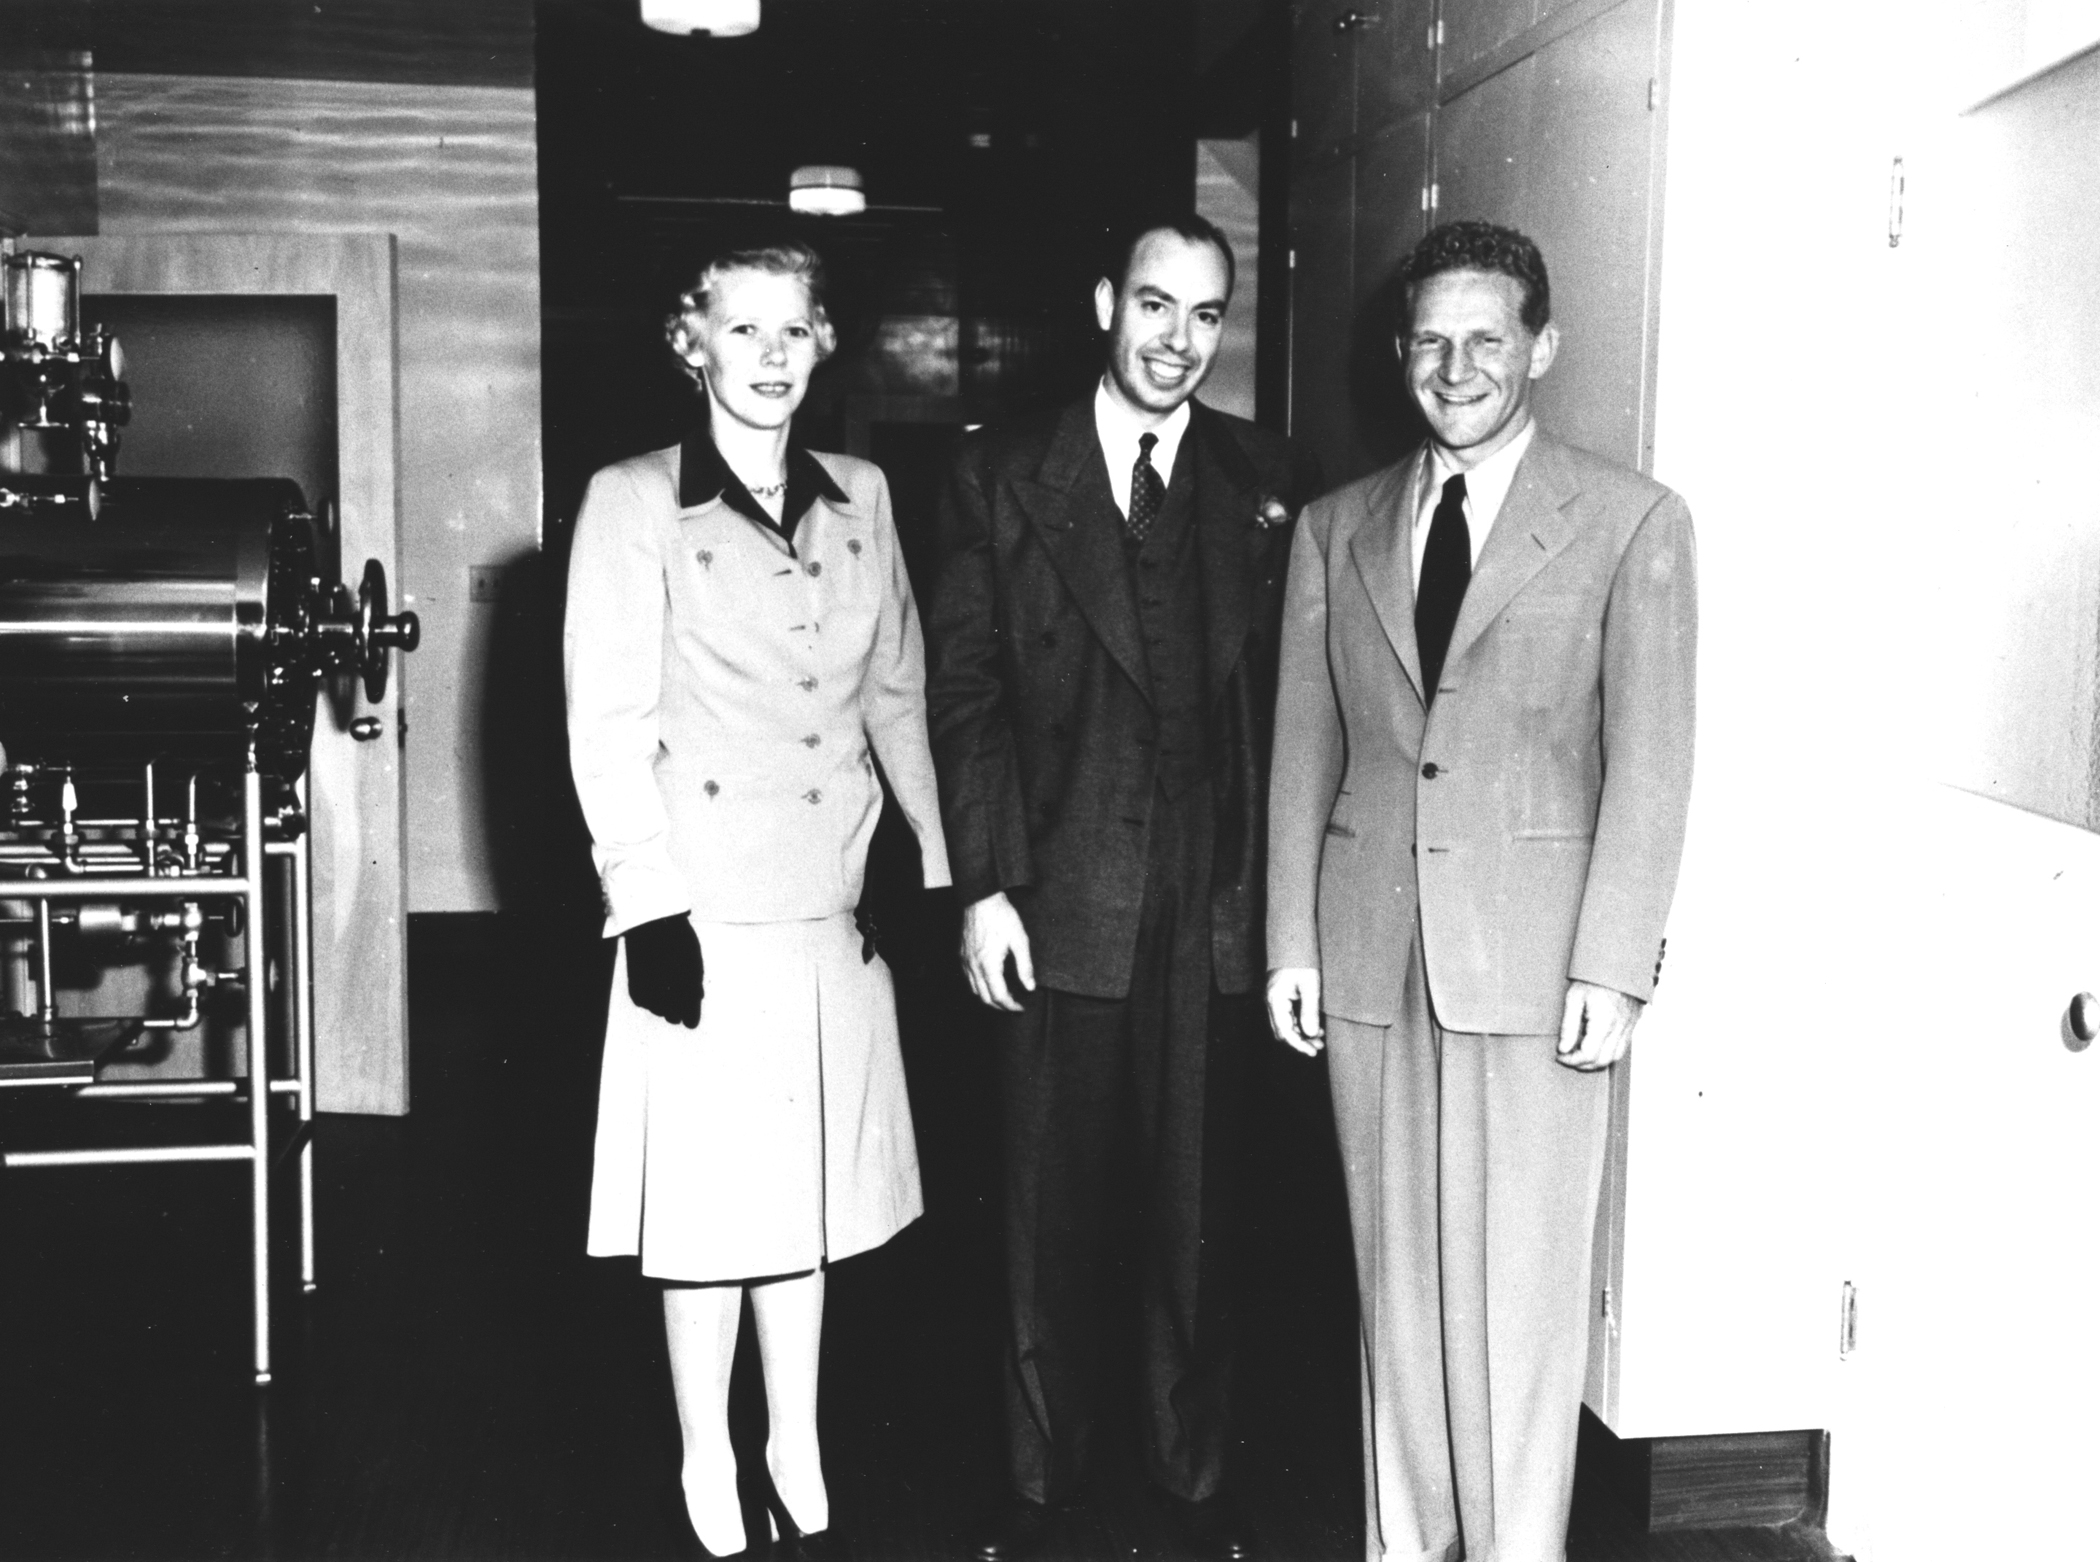 Millie and Cecil Cutting with Kaiser Permanente physician co-founder Sidney Garfield in 1943.